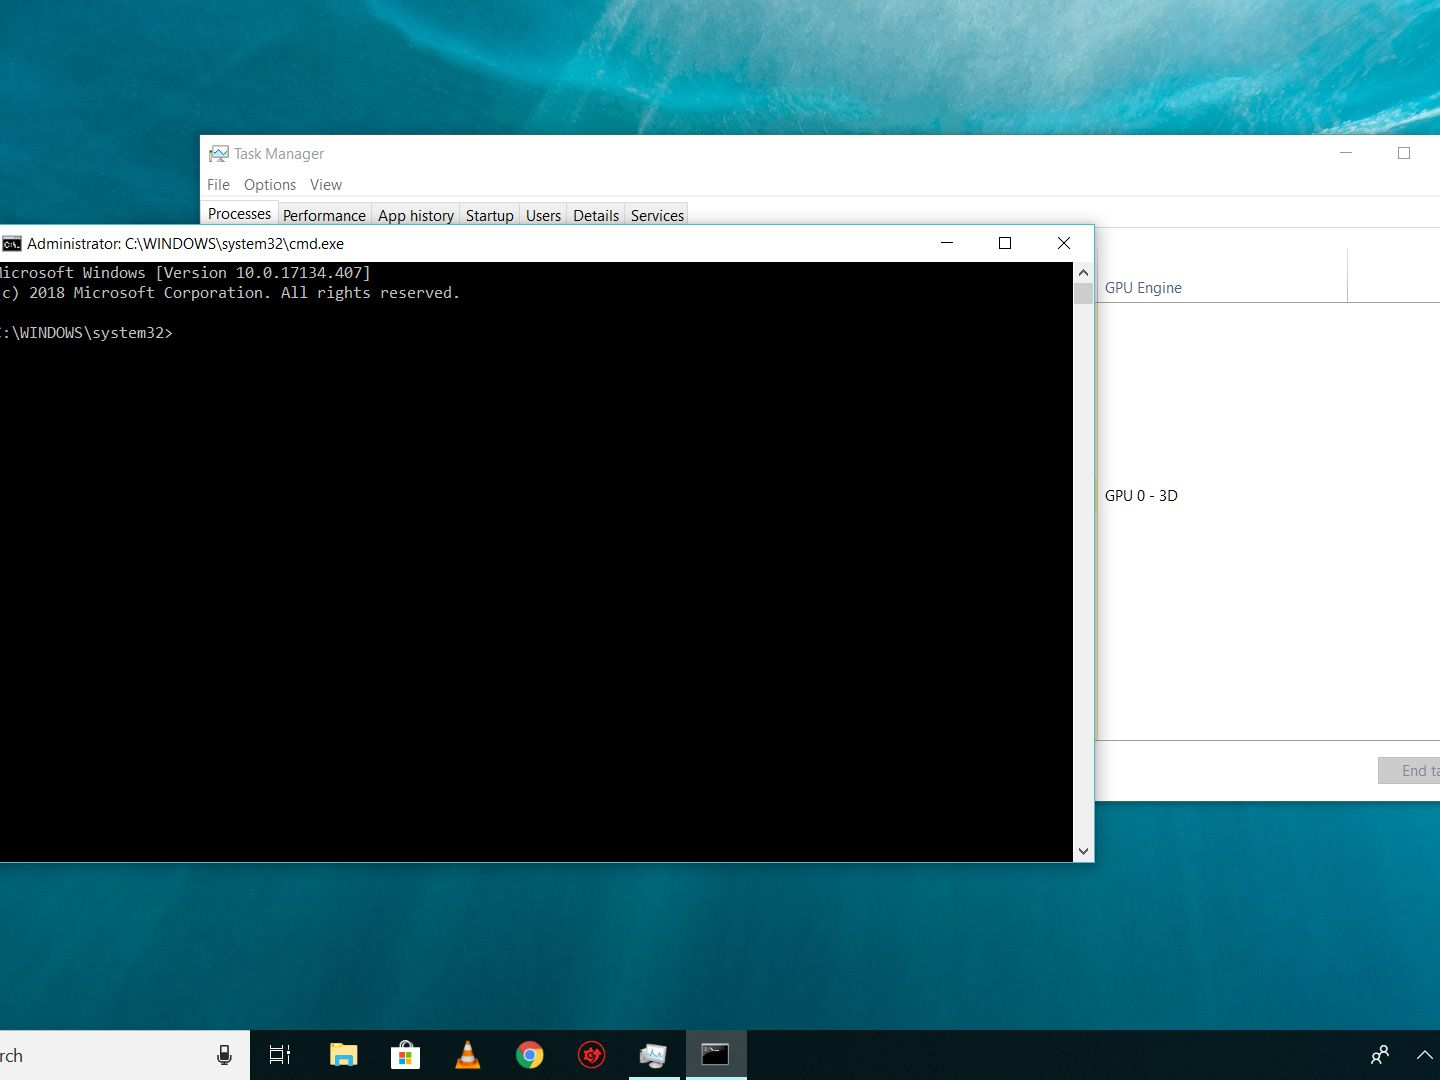 How to Open an Elevated Command Prompt in Windows